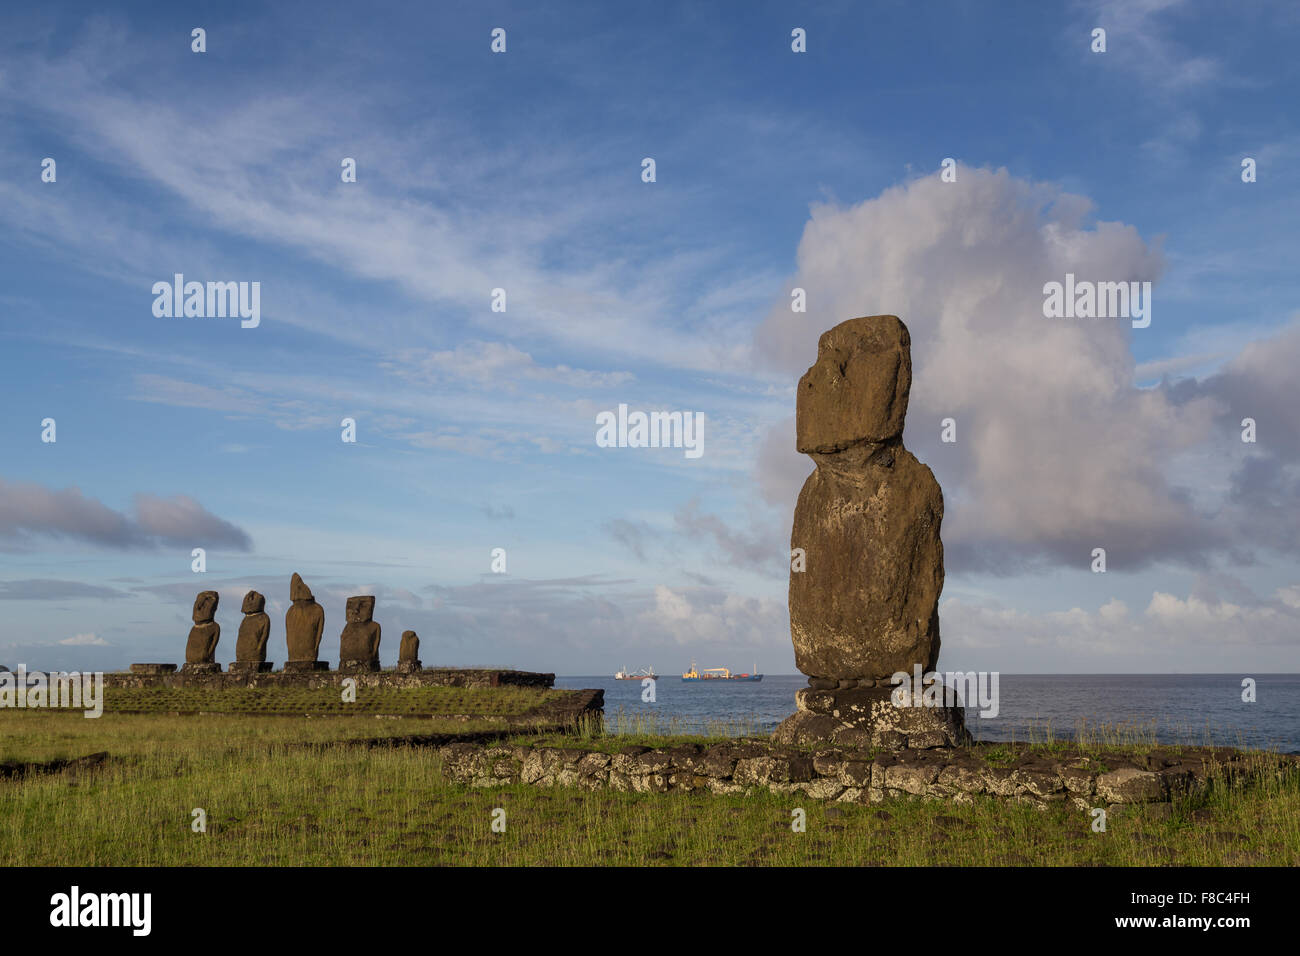 Photograph of the moais at Ahu Tahai on Easter Island in Chile in morning light. - Stock Image